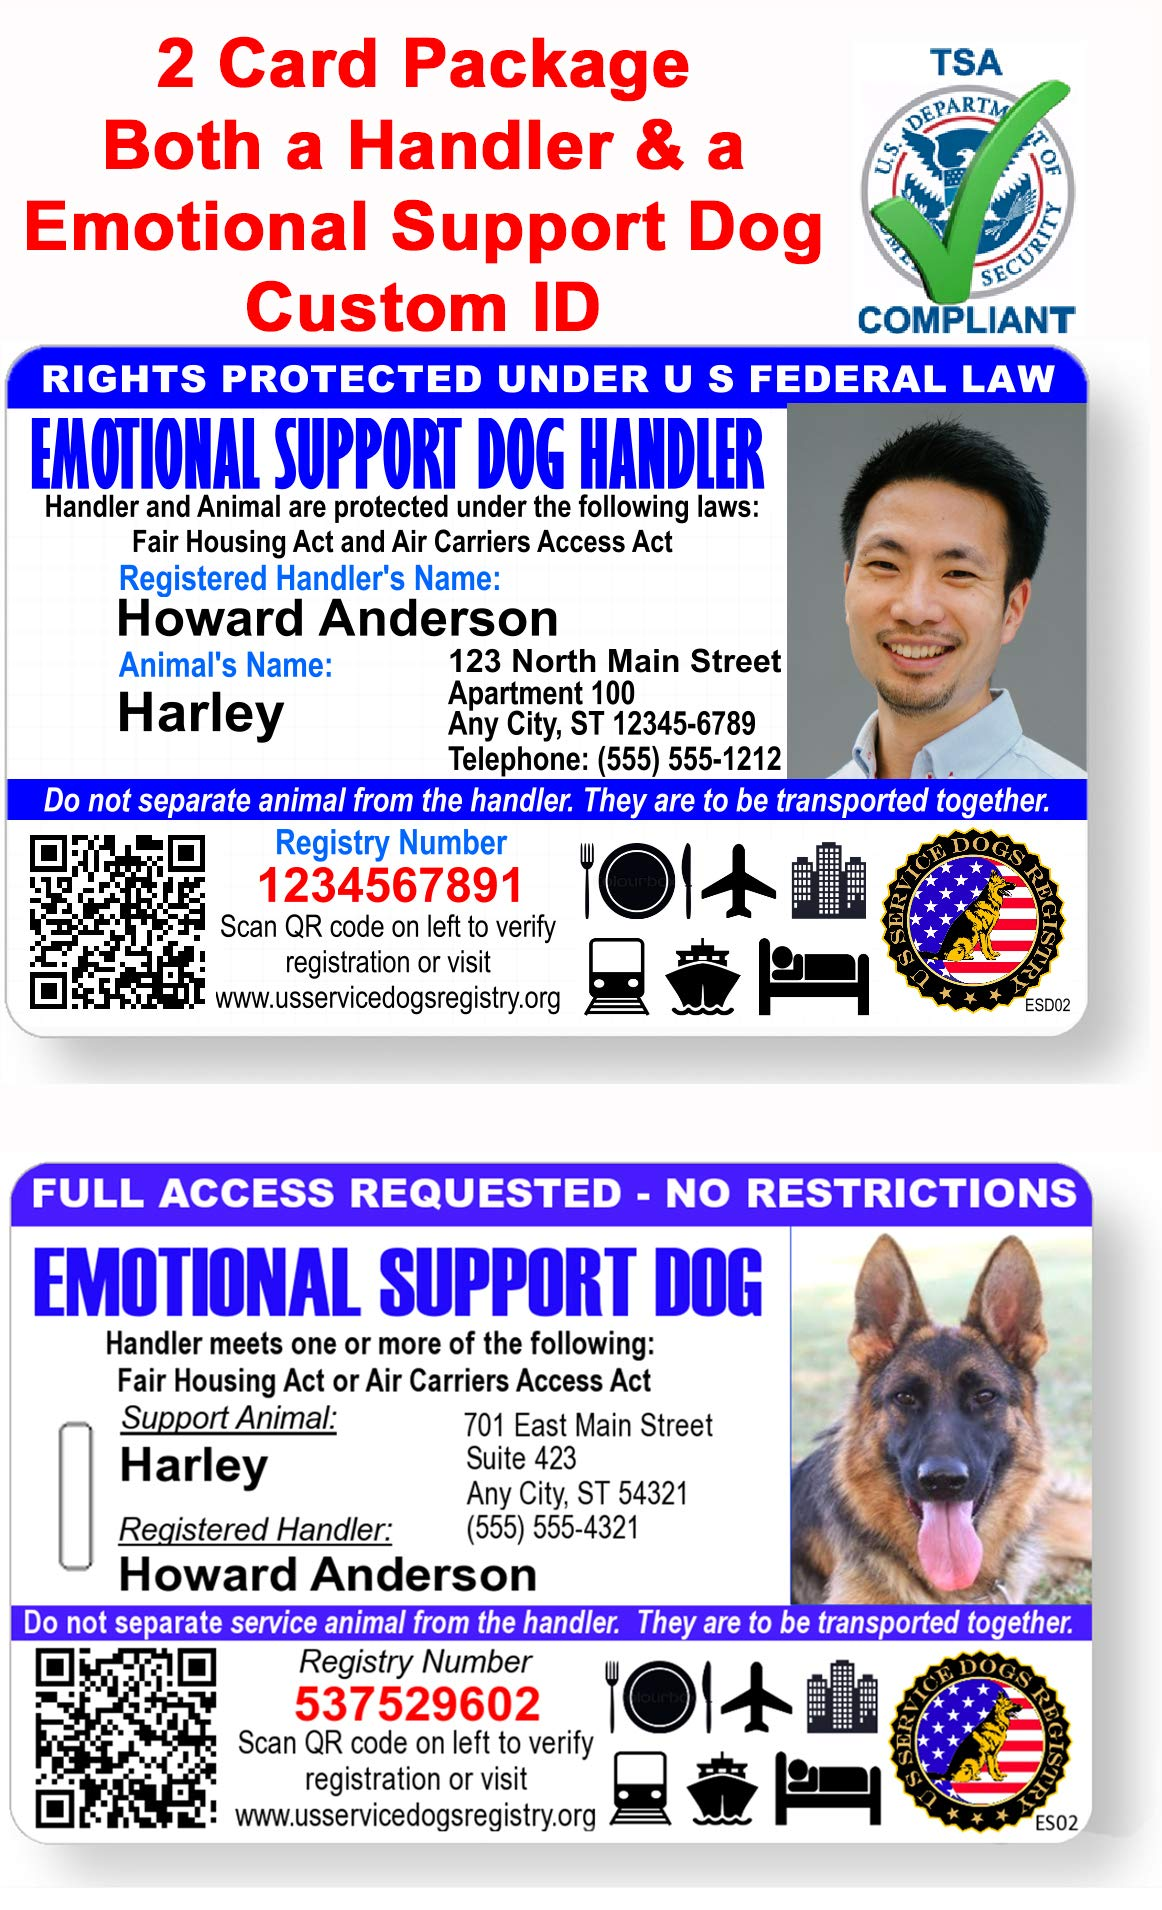 ust 4 Paws Custom Holographic QR Code Emotional Support Dog ID Card with Registration to Service Dogs Registry with Strap - Landscape Style (Emotional Support Dog and Handler Photo ID)